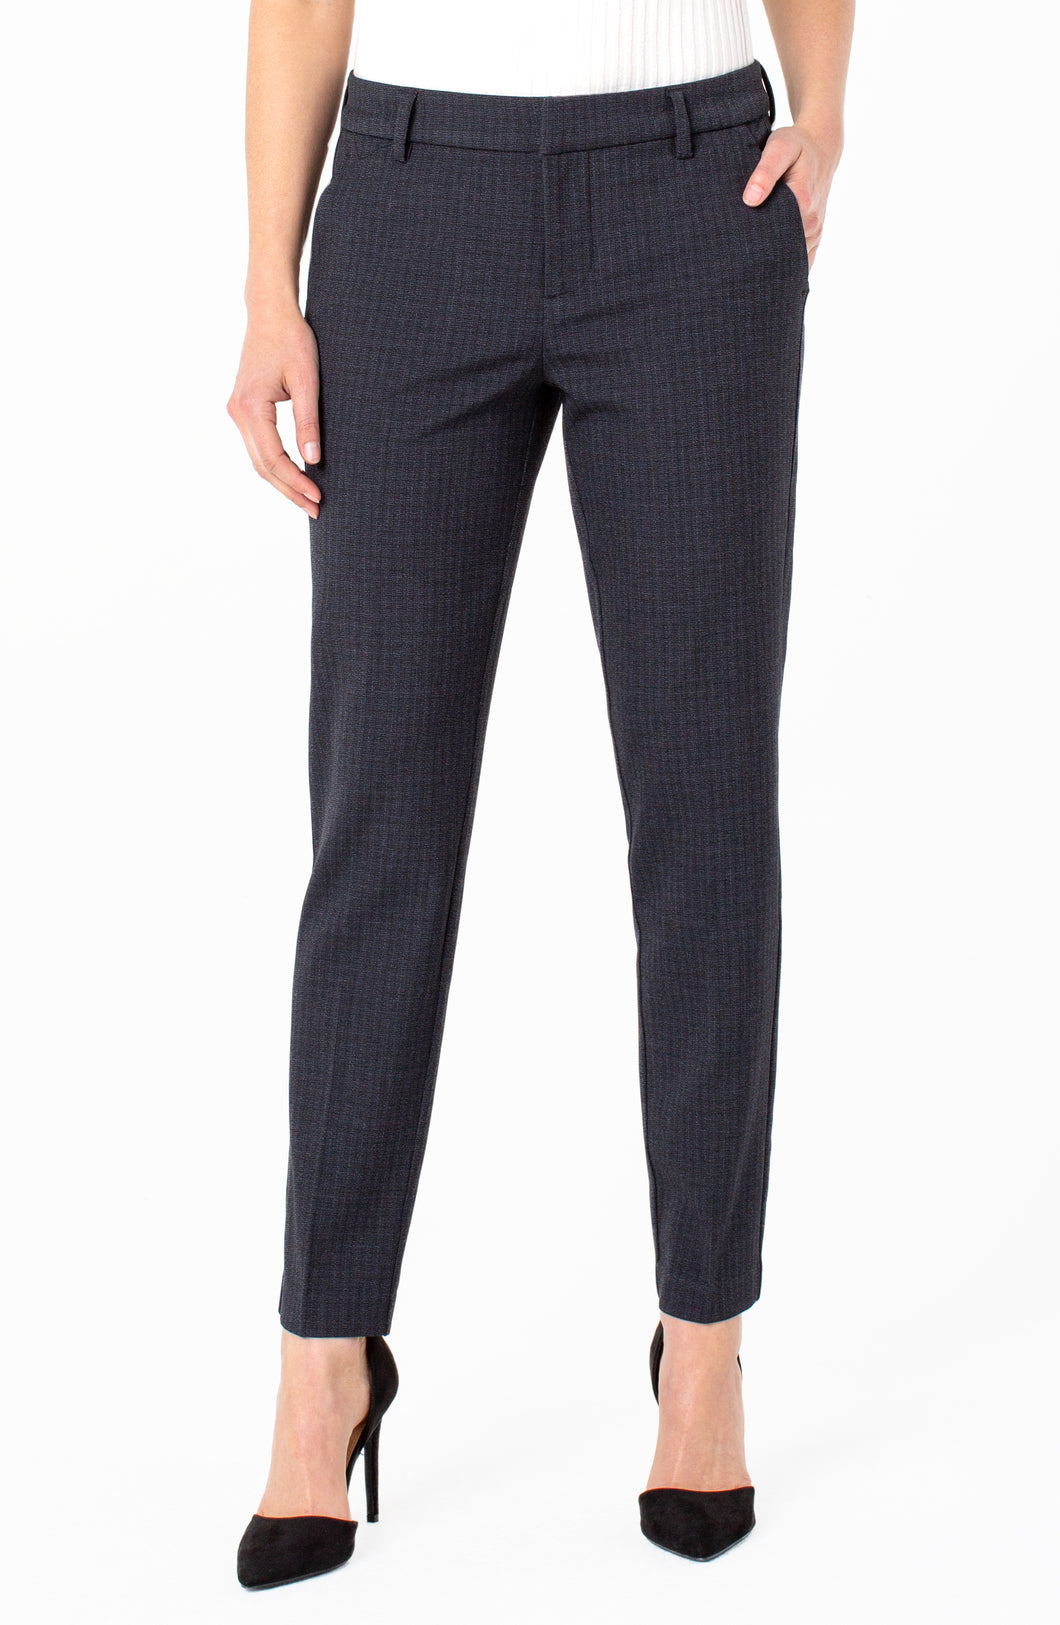 Liverpool Kelsey Knit Trouser (navy/black check)